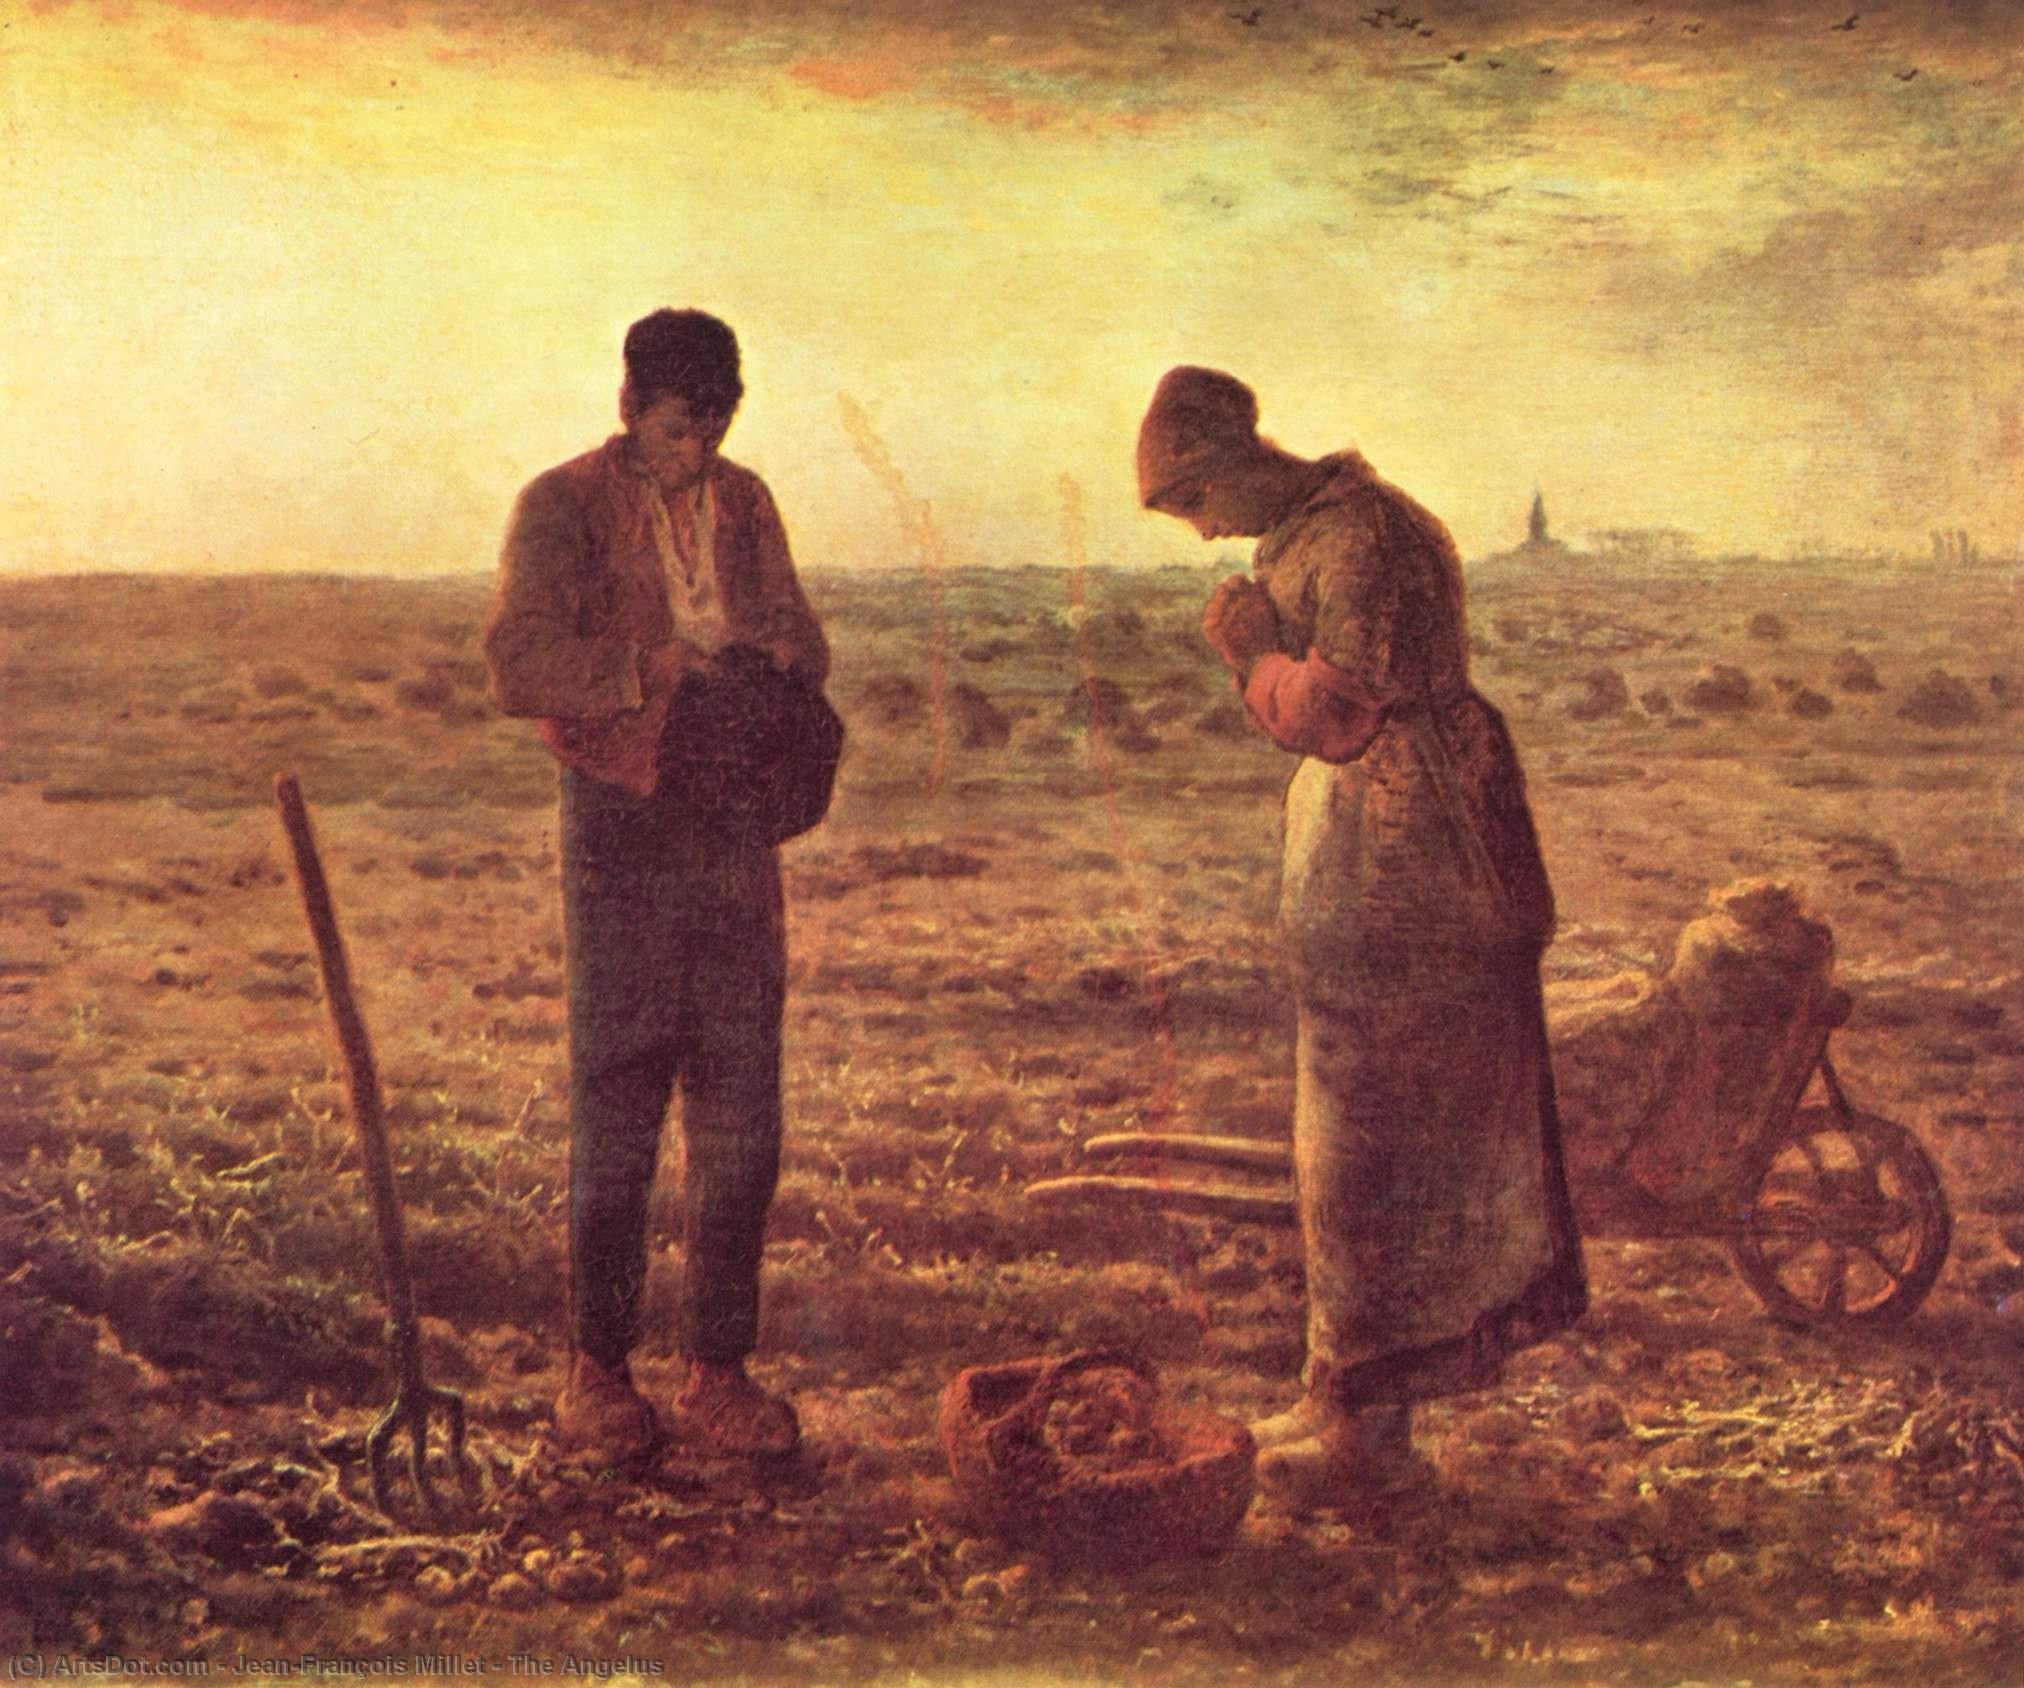 Wikioo.org - The Encyclopedia of Fine Arts - Painting, Artwork by Jean-François Millet - The Angelus